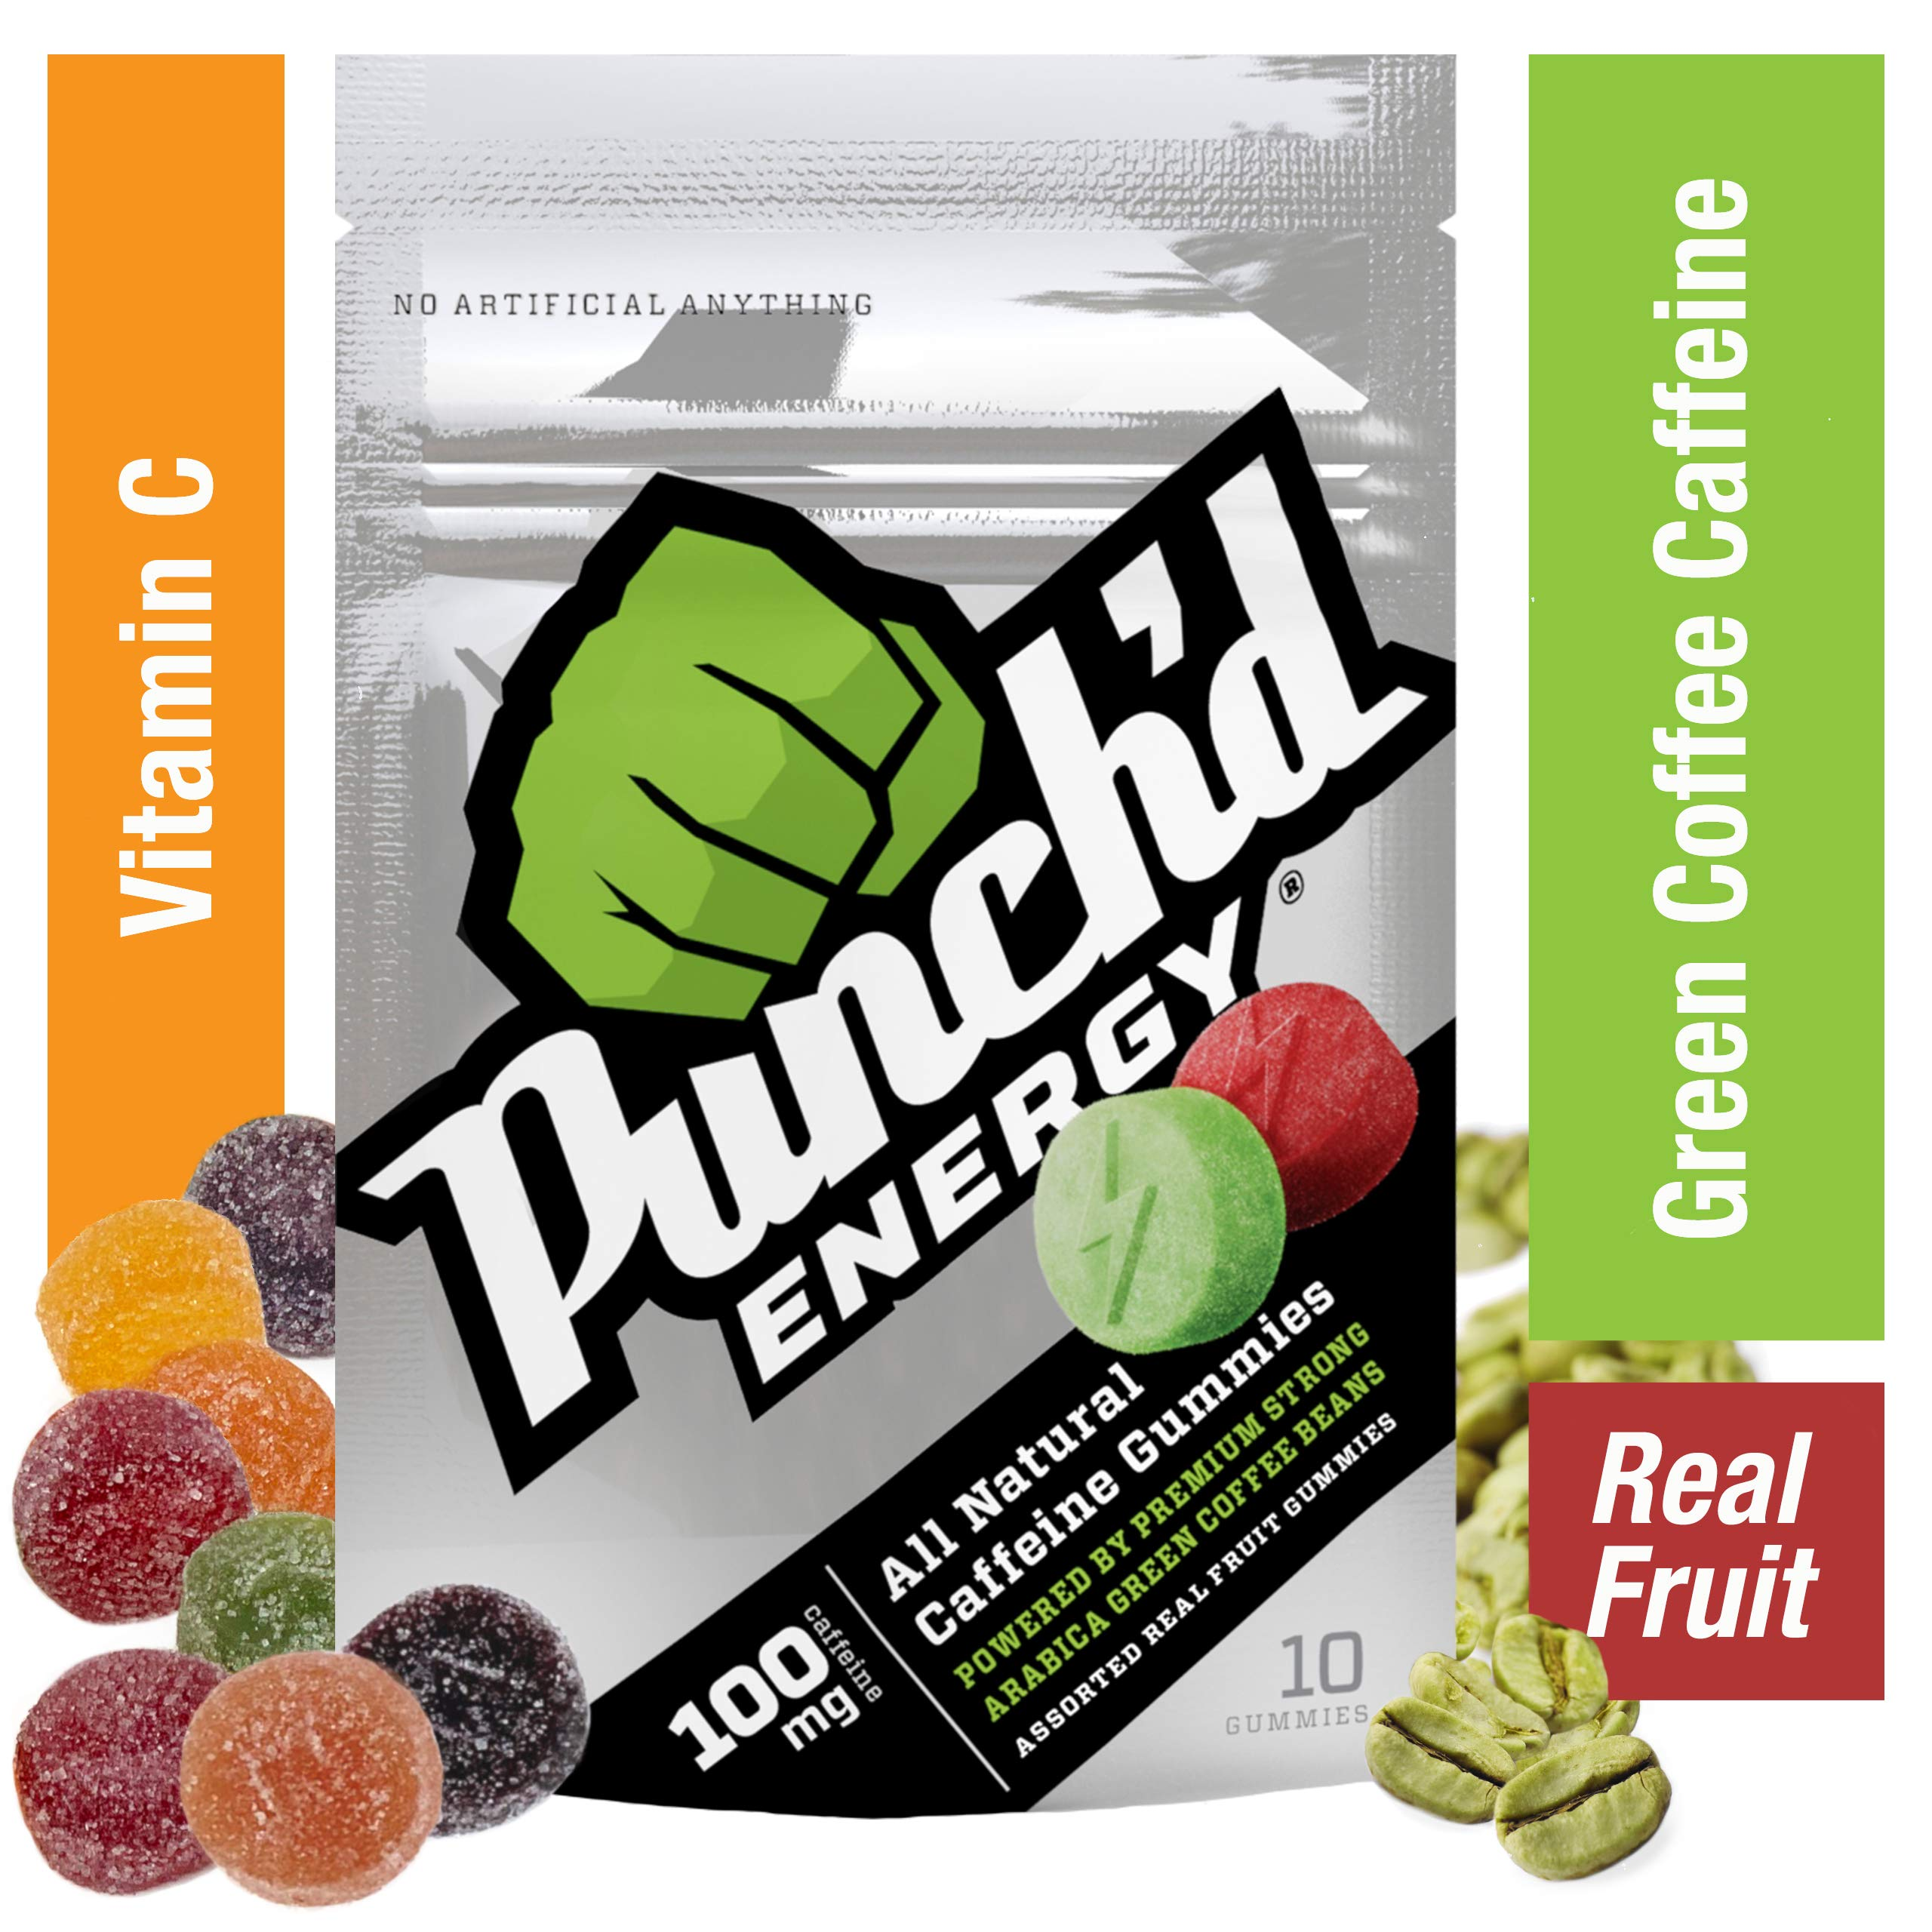 10-Pack Punch'd Energy Natural Caffeine Gummies (100 Count) Real Fruit Energy Chews Powered by Premium Strong Arabica Green Coffee Beans, Vitamin C, Low Glycemic, Clean Caffeine #getpunchd Go You! by Punch'd